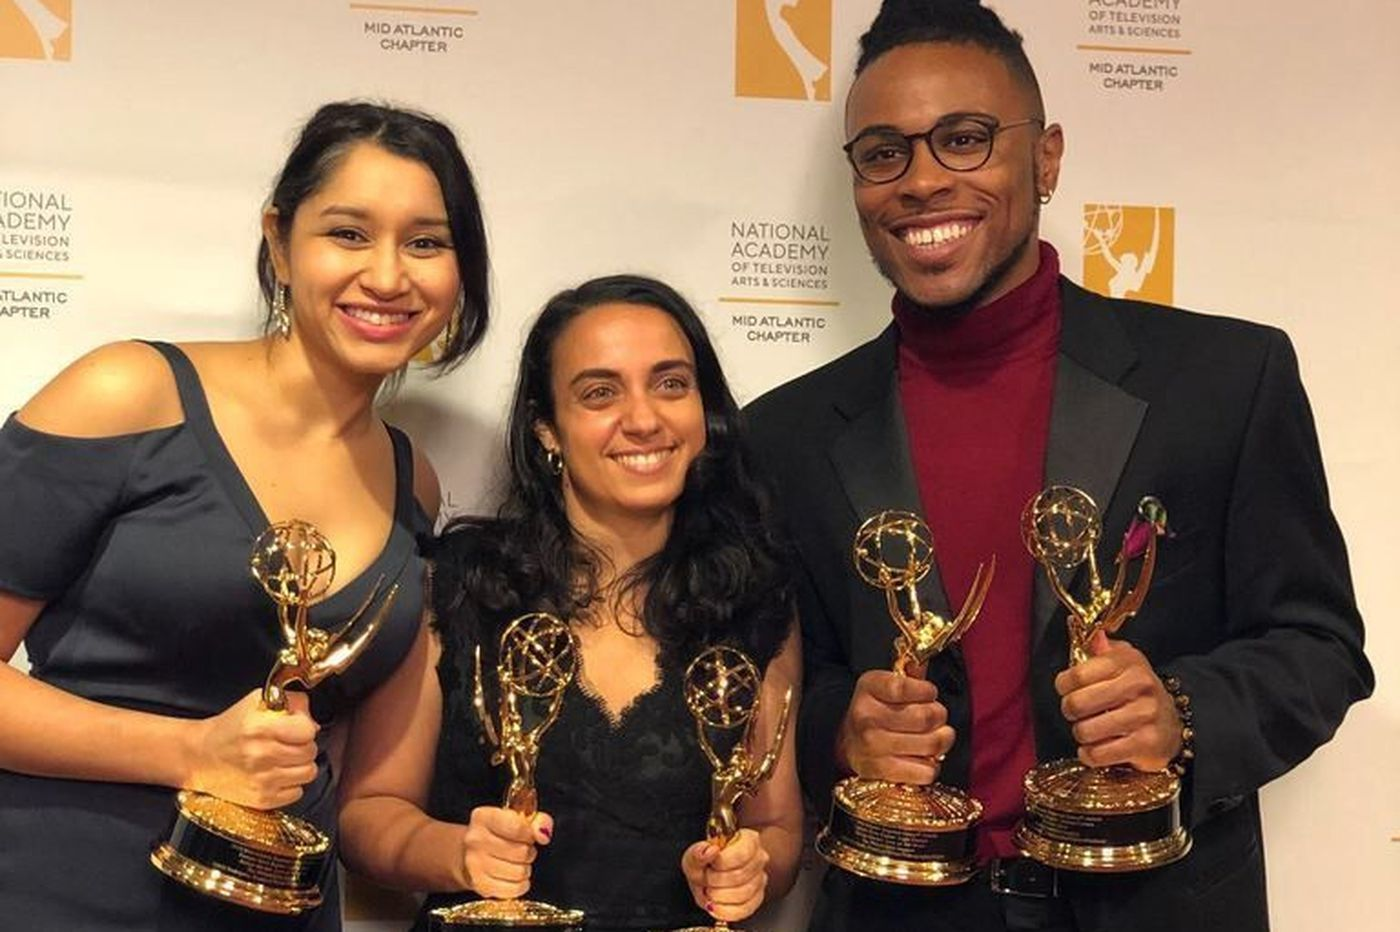 Inquirer journalists win Emmys for documentaries on Italian Market and Boys' Latin football